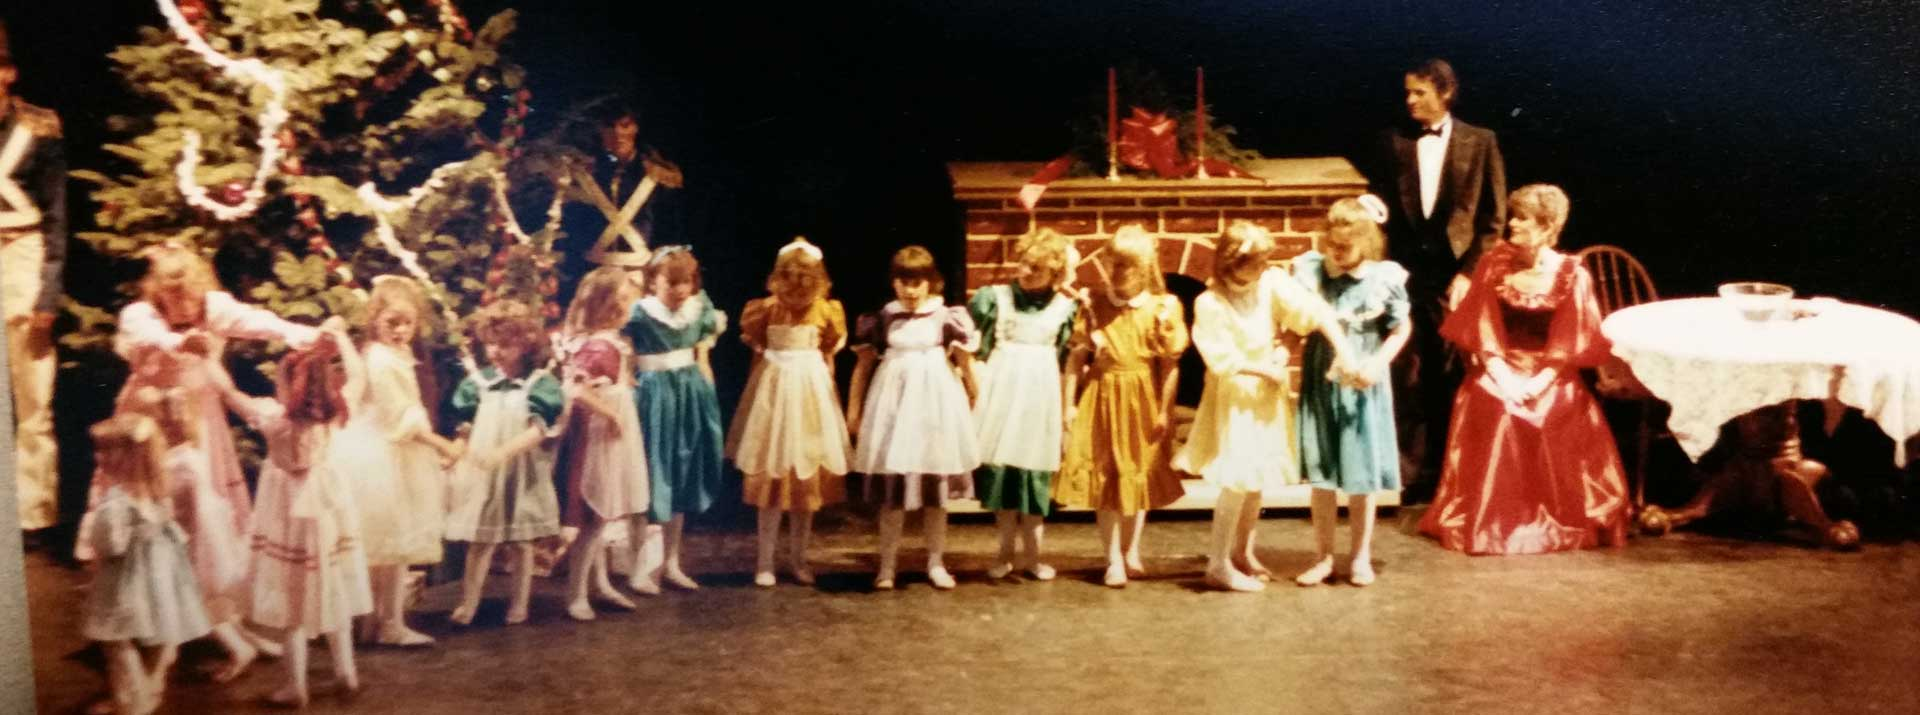 The History of the Garden City Ballet - photo from a long performace ago